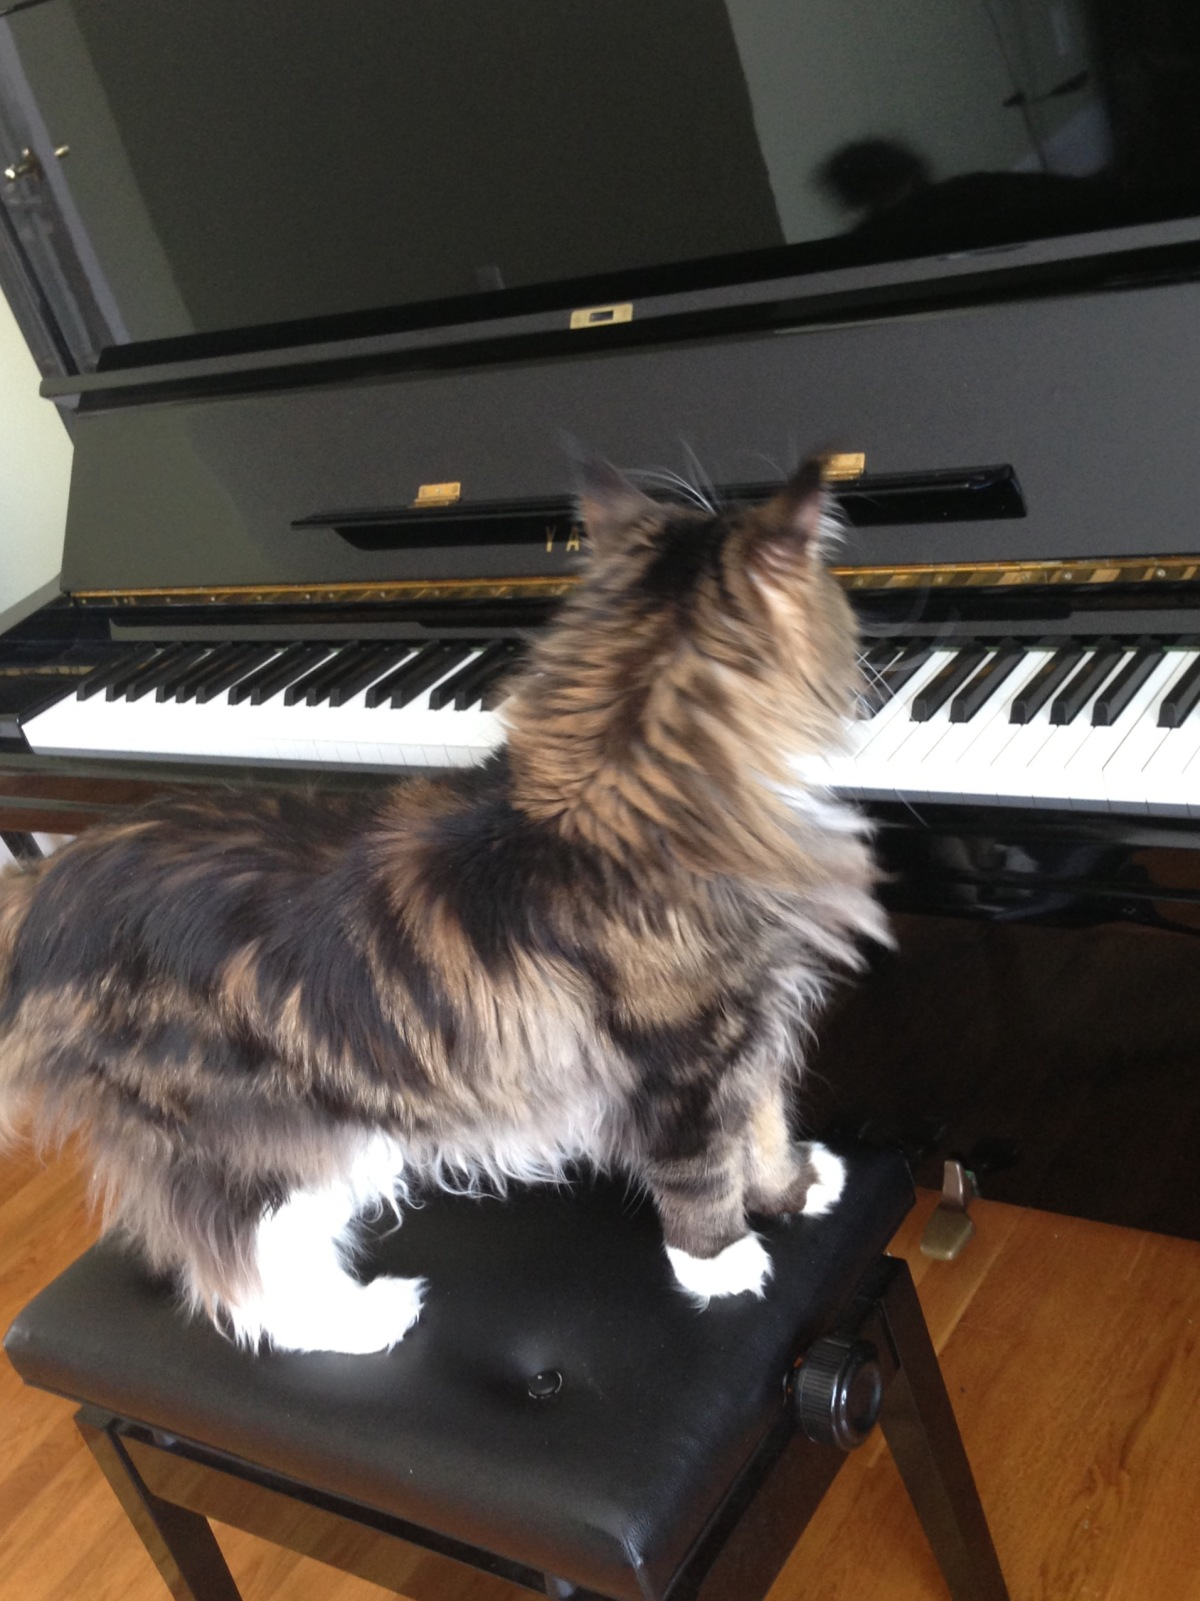 A Cat Contemplates the Piano